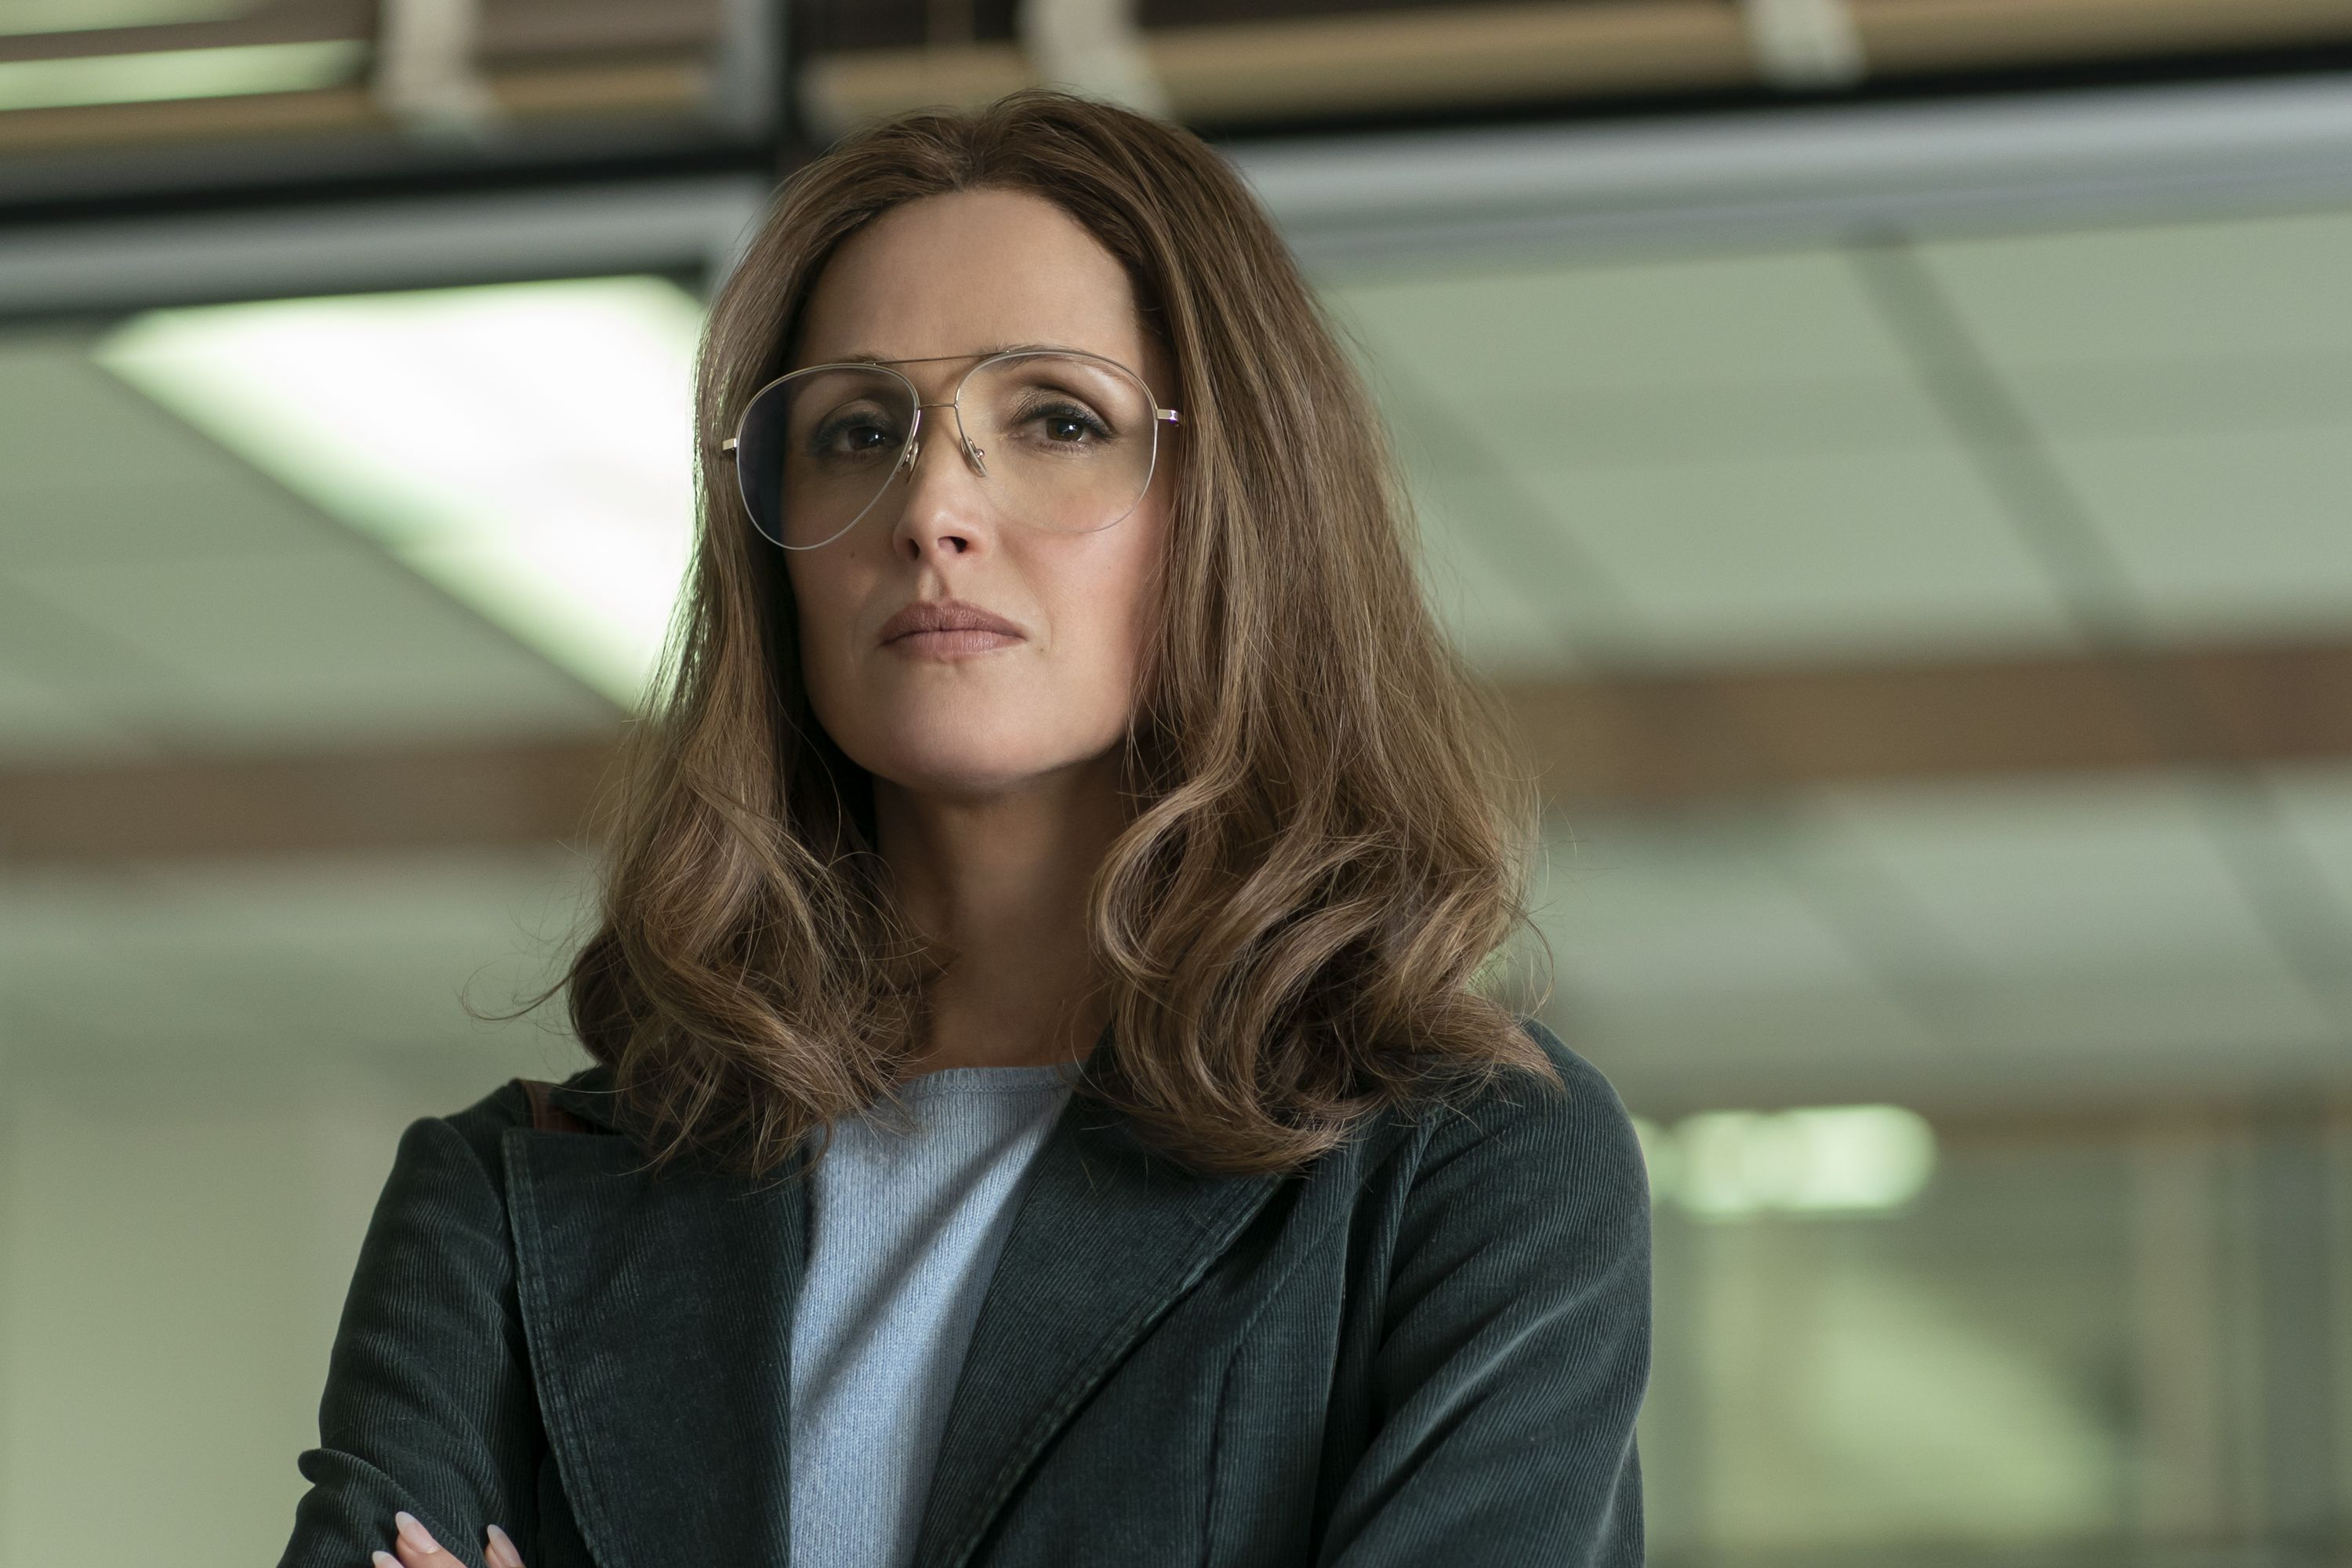 Rose Byrne on How Mrs. America Captures 'The Divided World We Live in Now'